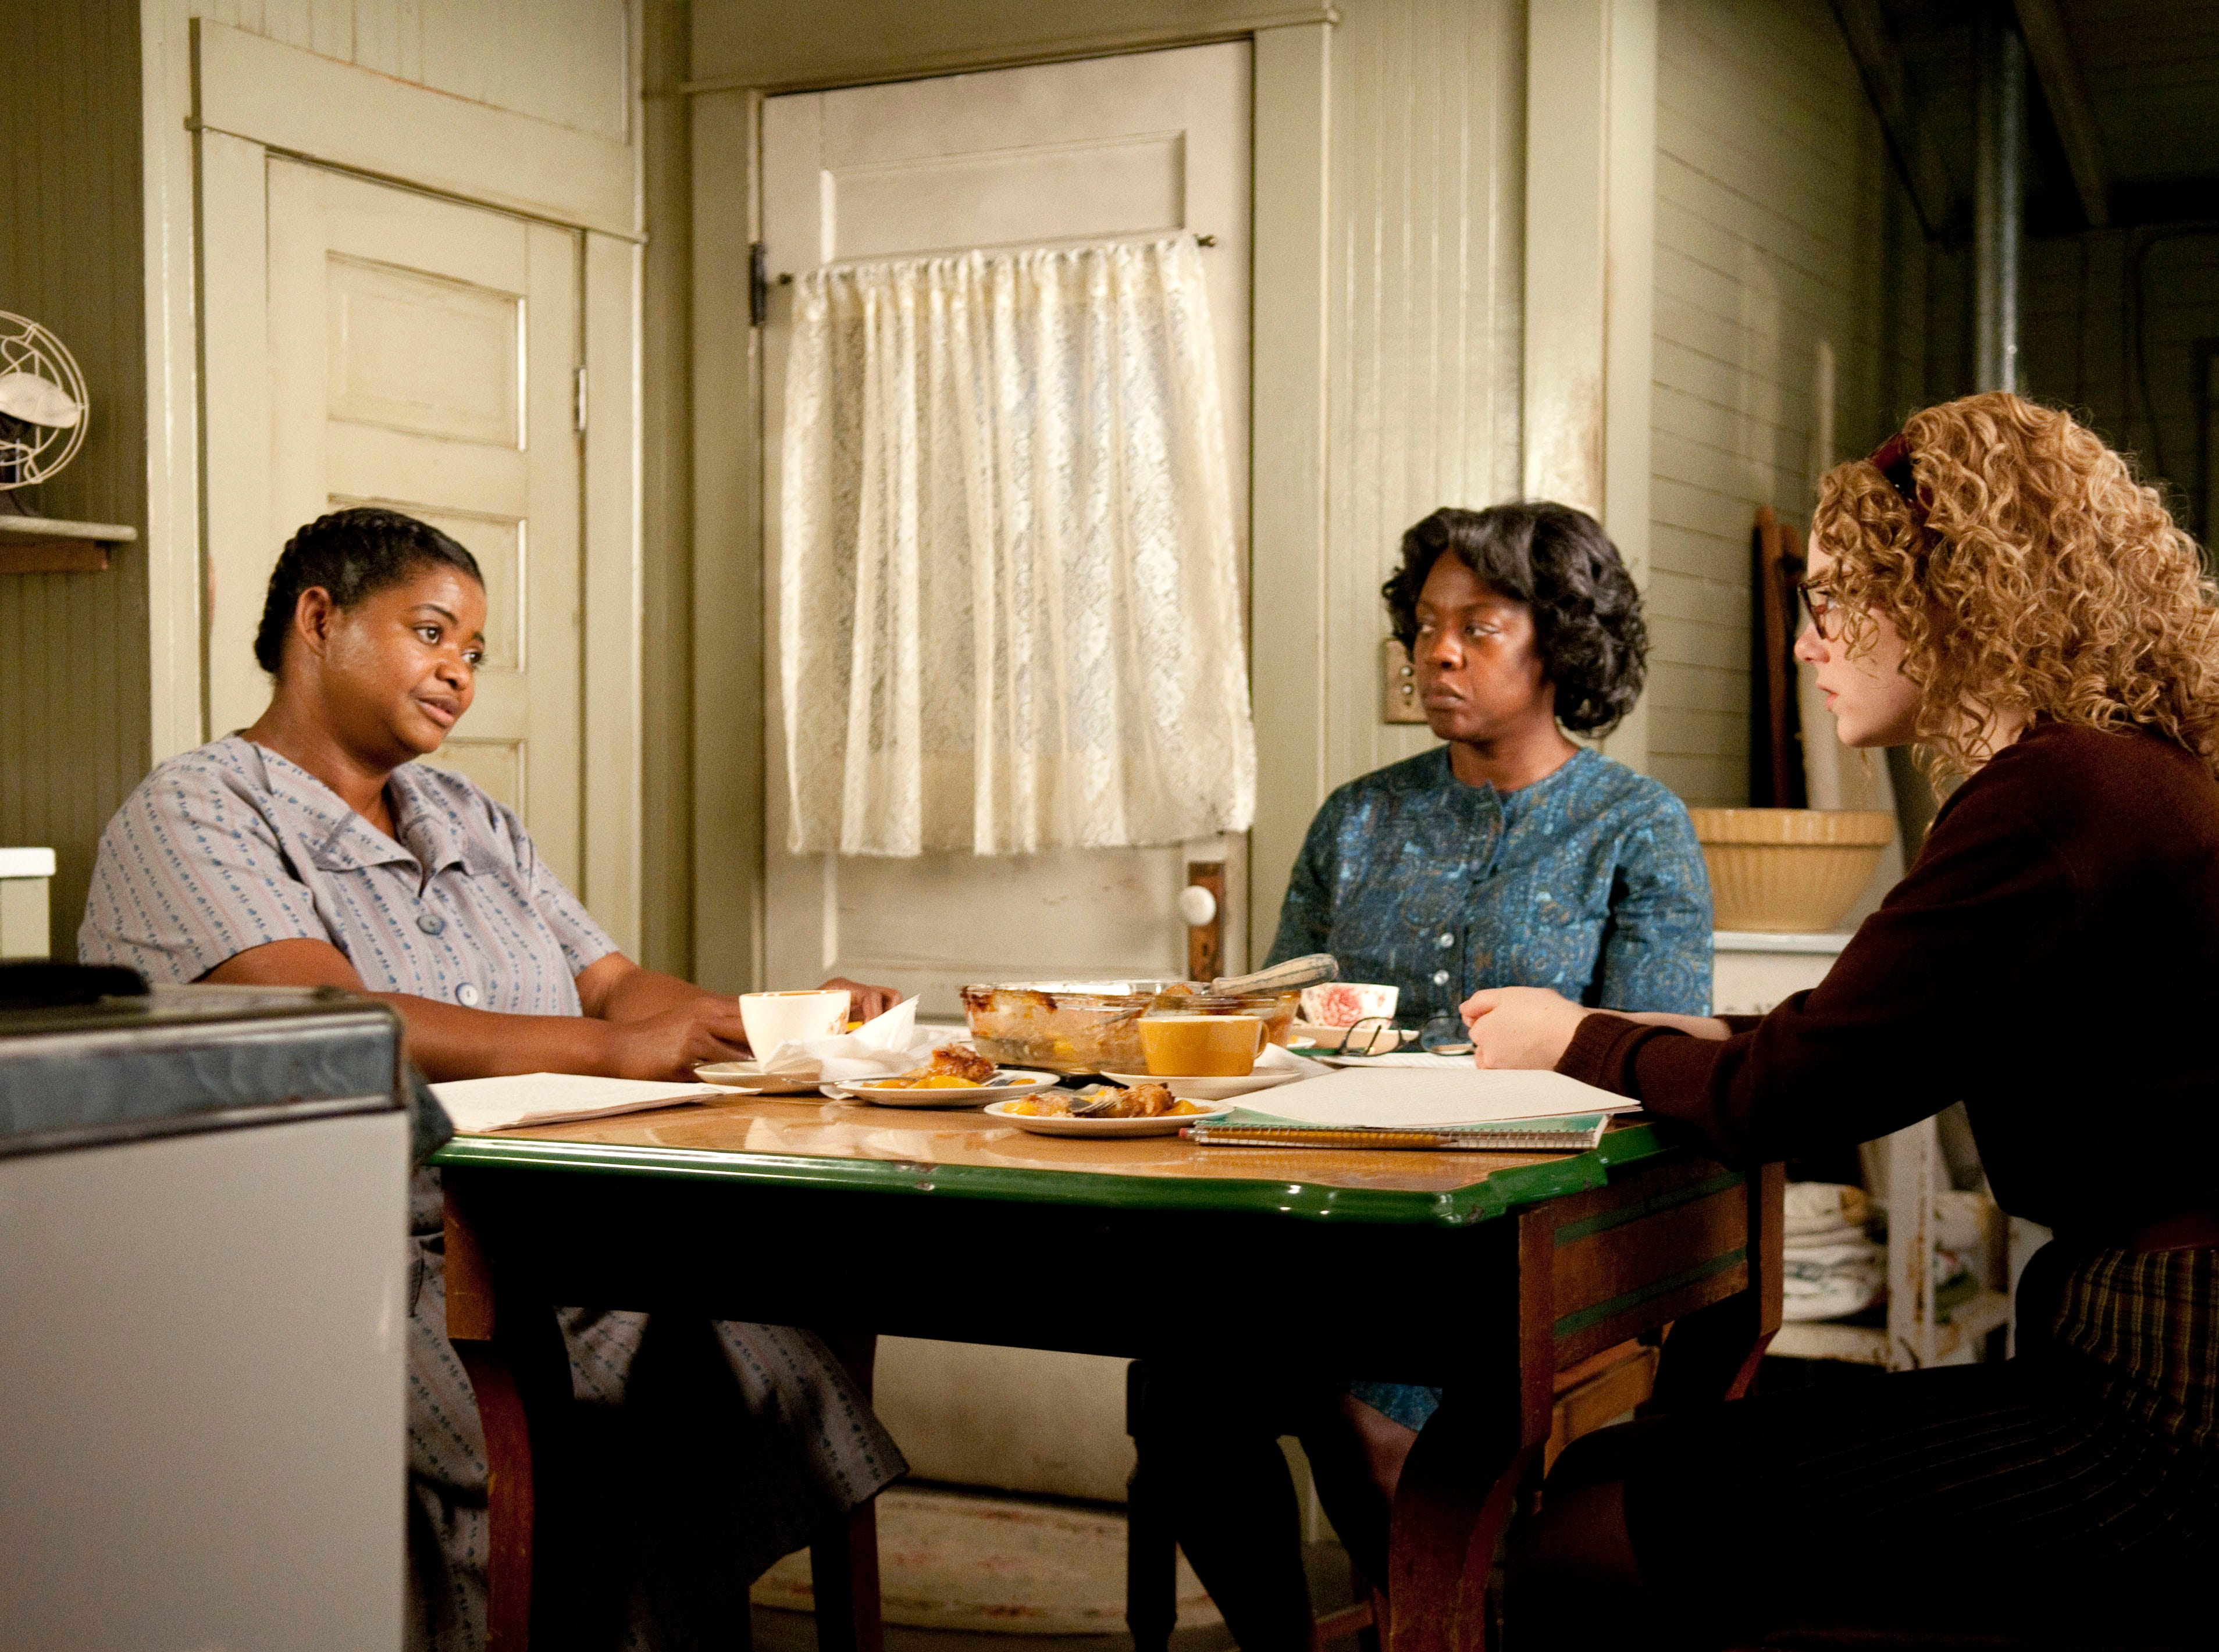 """In Jackson, Mississippi in 1963, Minny Jackson (Octavia Spencer, left), Aibileen Clark (Viola Davis, center) and Skeeter Phelan (Emma Stone, right) form an improbable alliance, resulting in a remarkable sisterhood that instills all of them with the courage to transcend the lines that define them in a scene from the motion picture """"The Help."""" Photo by Dale Robinette, DreamWorks Pictures [Via MerlinFTP Drop]"""